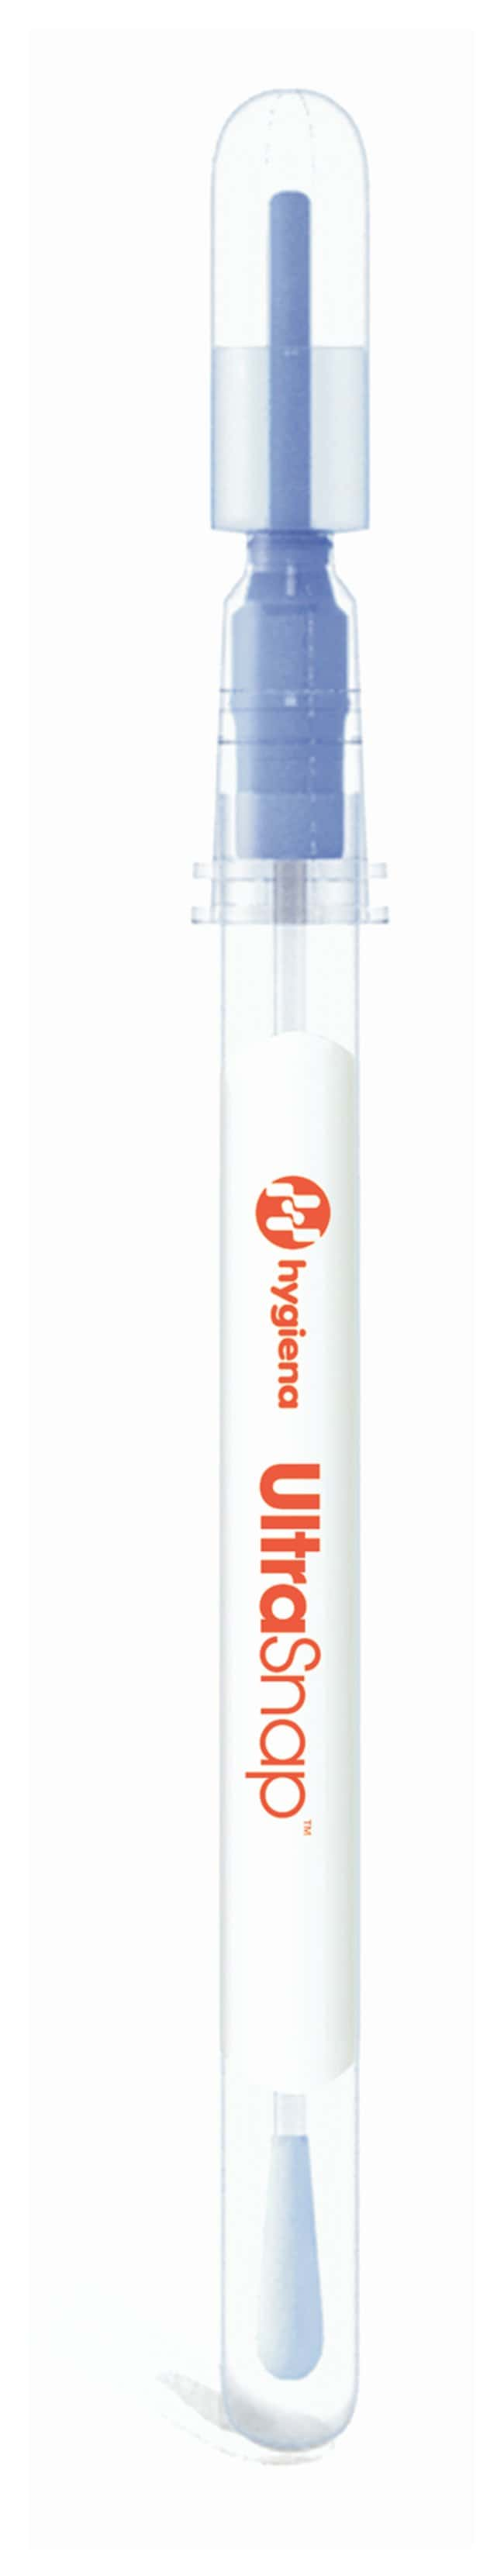 Hygiena Ultrasnap™ Surface ATP Swabs